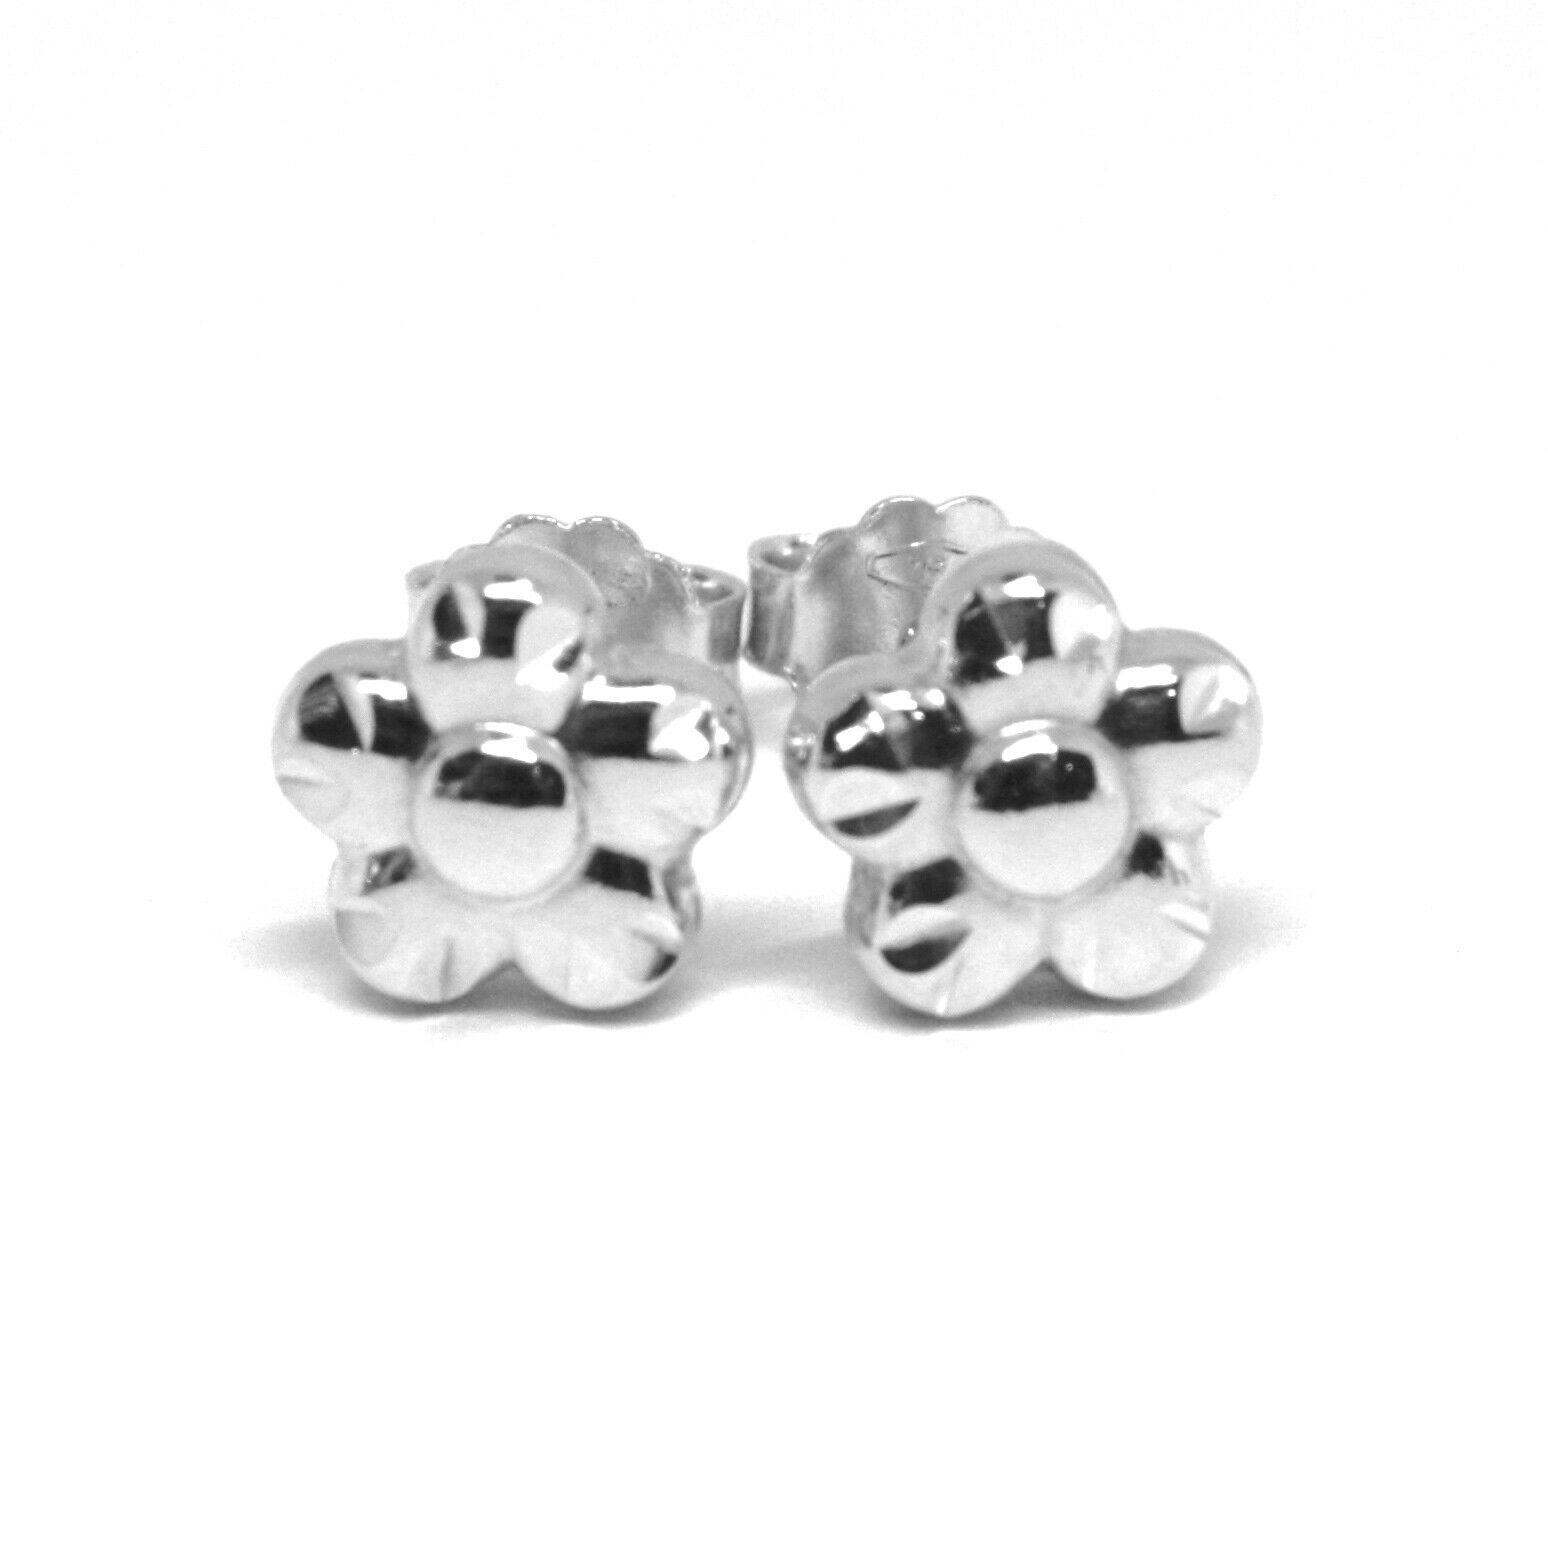 18K WHITE GOLD KIDS EARRINGS, FINELY HAMMERED MINI FLOWER DAISY, 0.3 INCHES